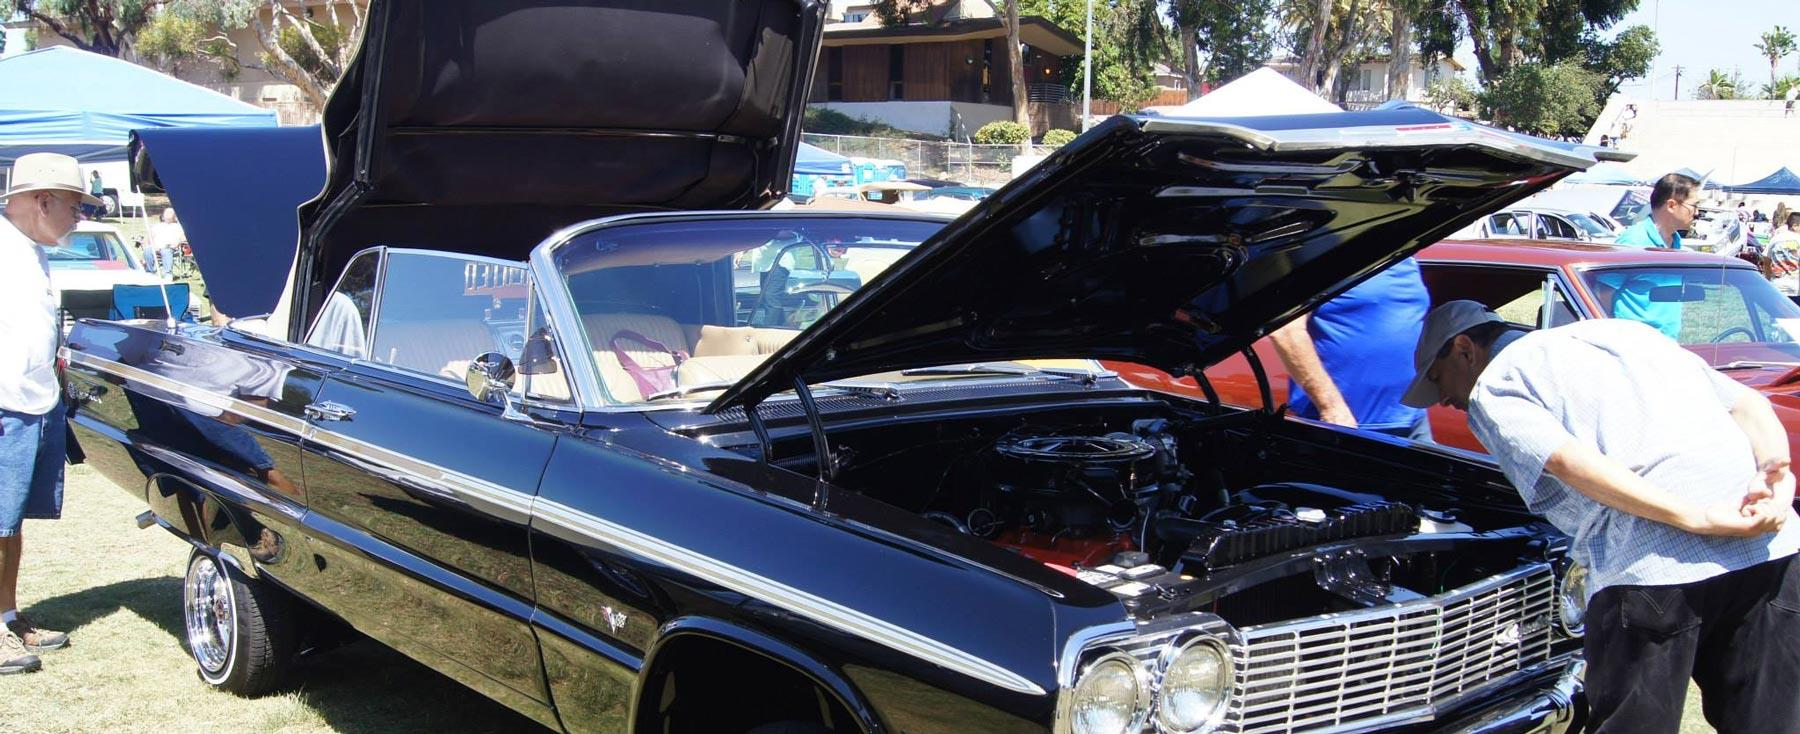 National City Automobile Heritage Day Festival & Car Show